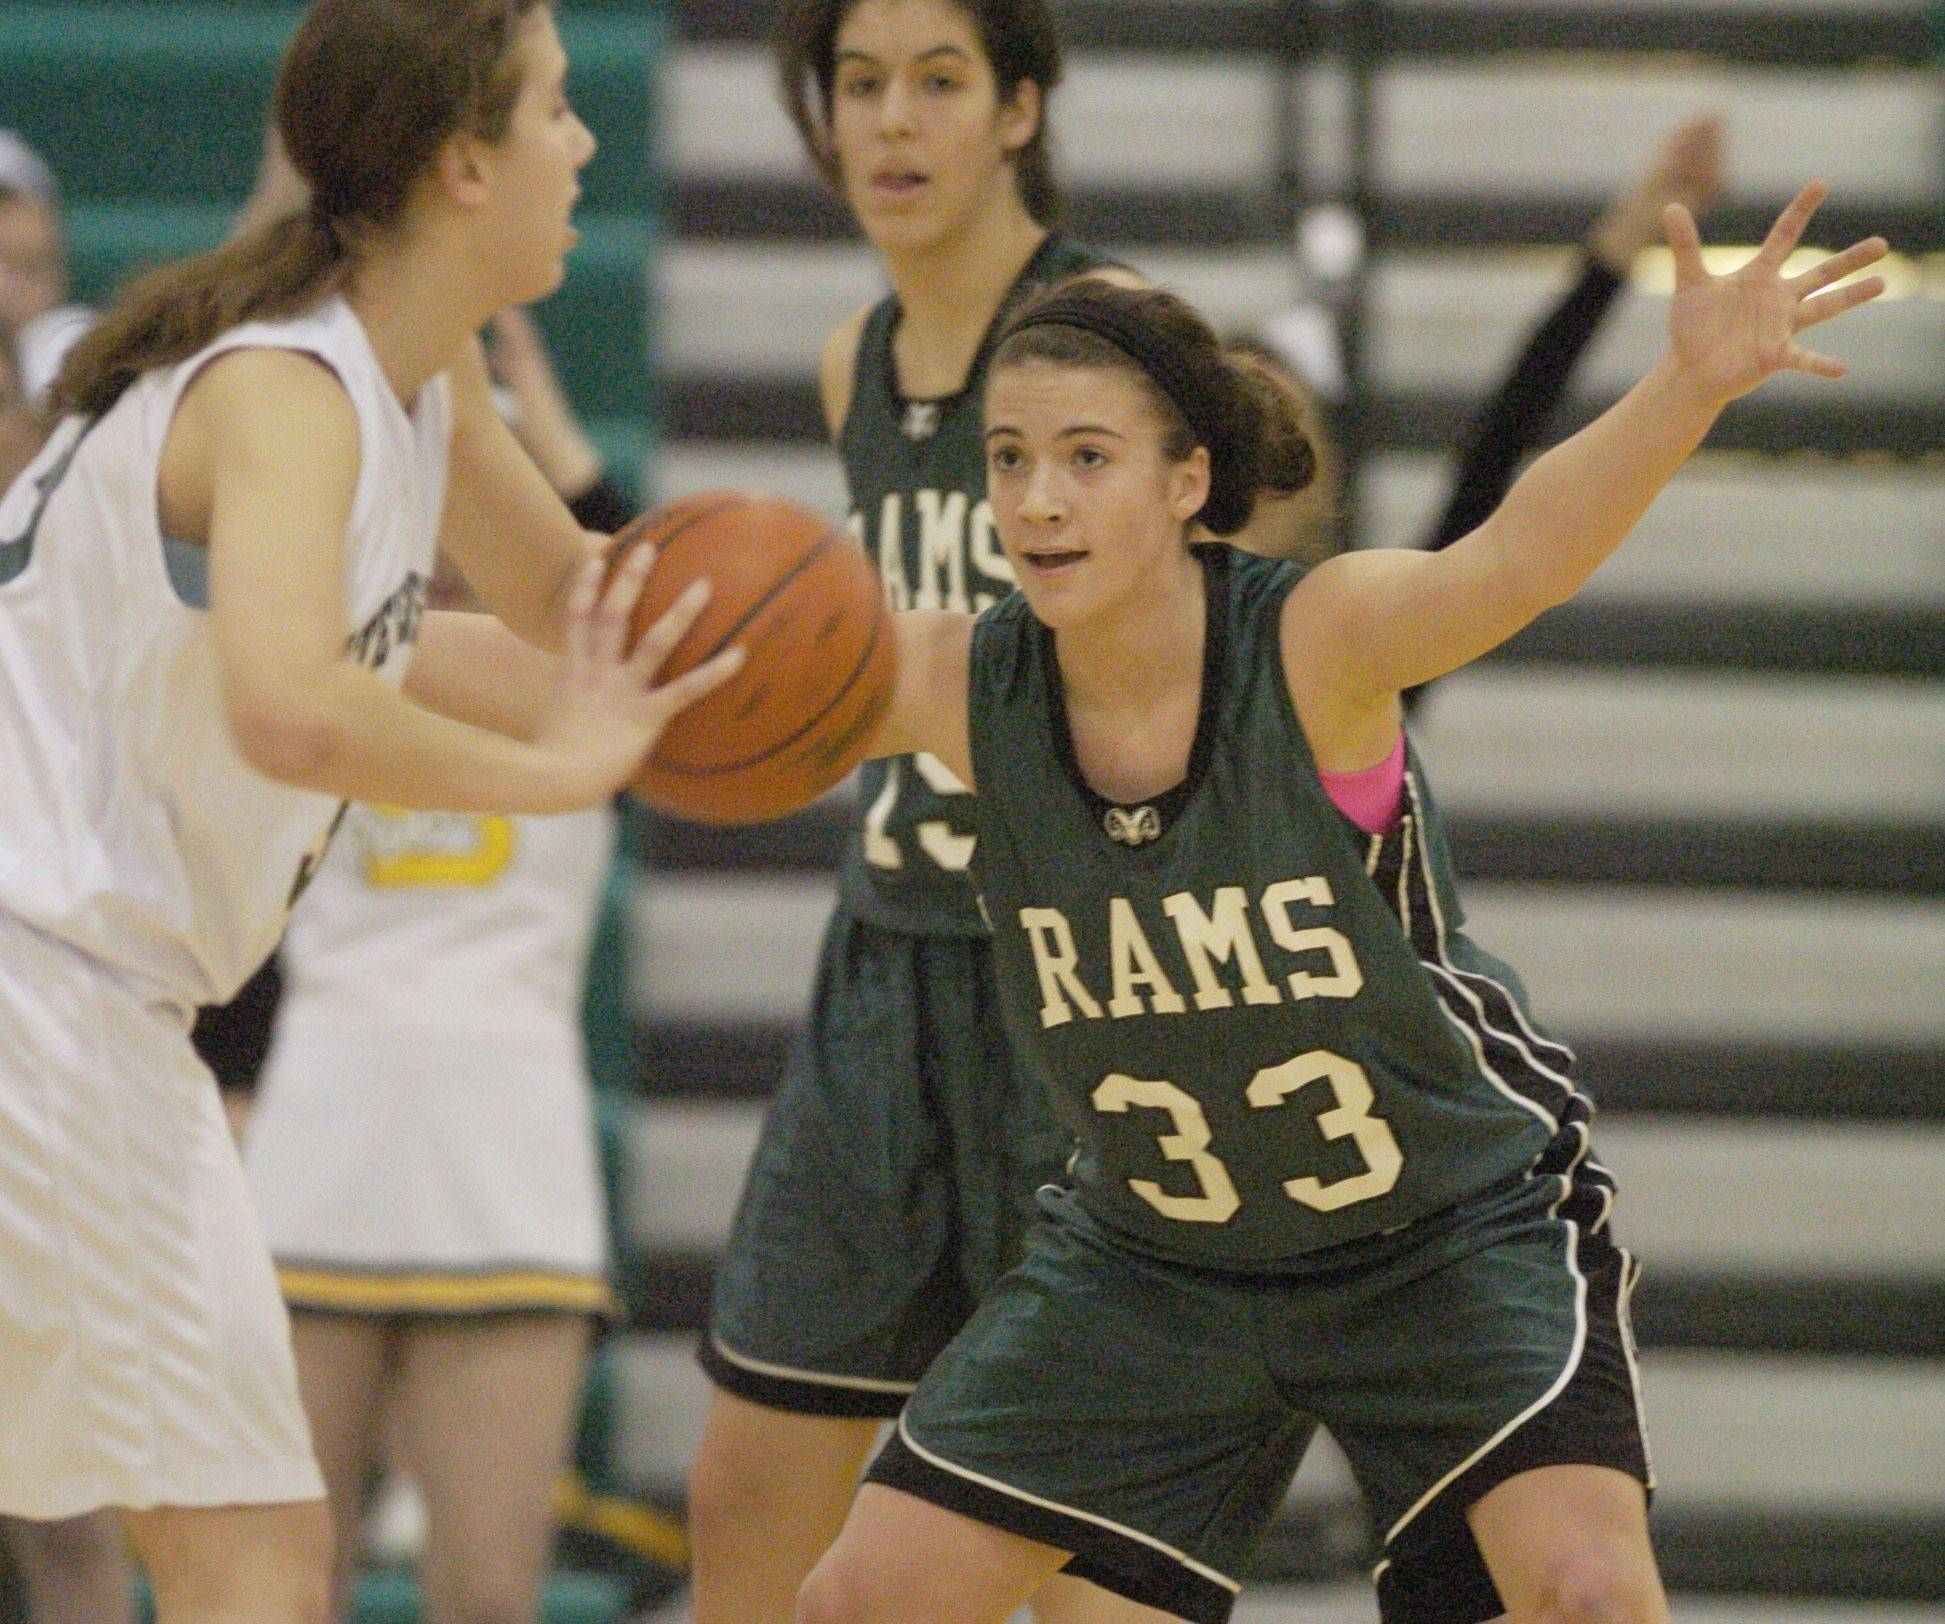 Images from the Grayslake Central at Stevenson girls basketball game Saturday, January 8.